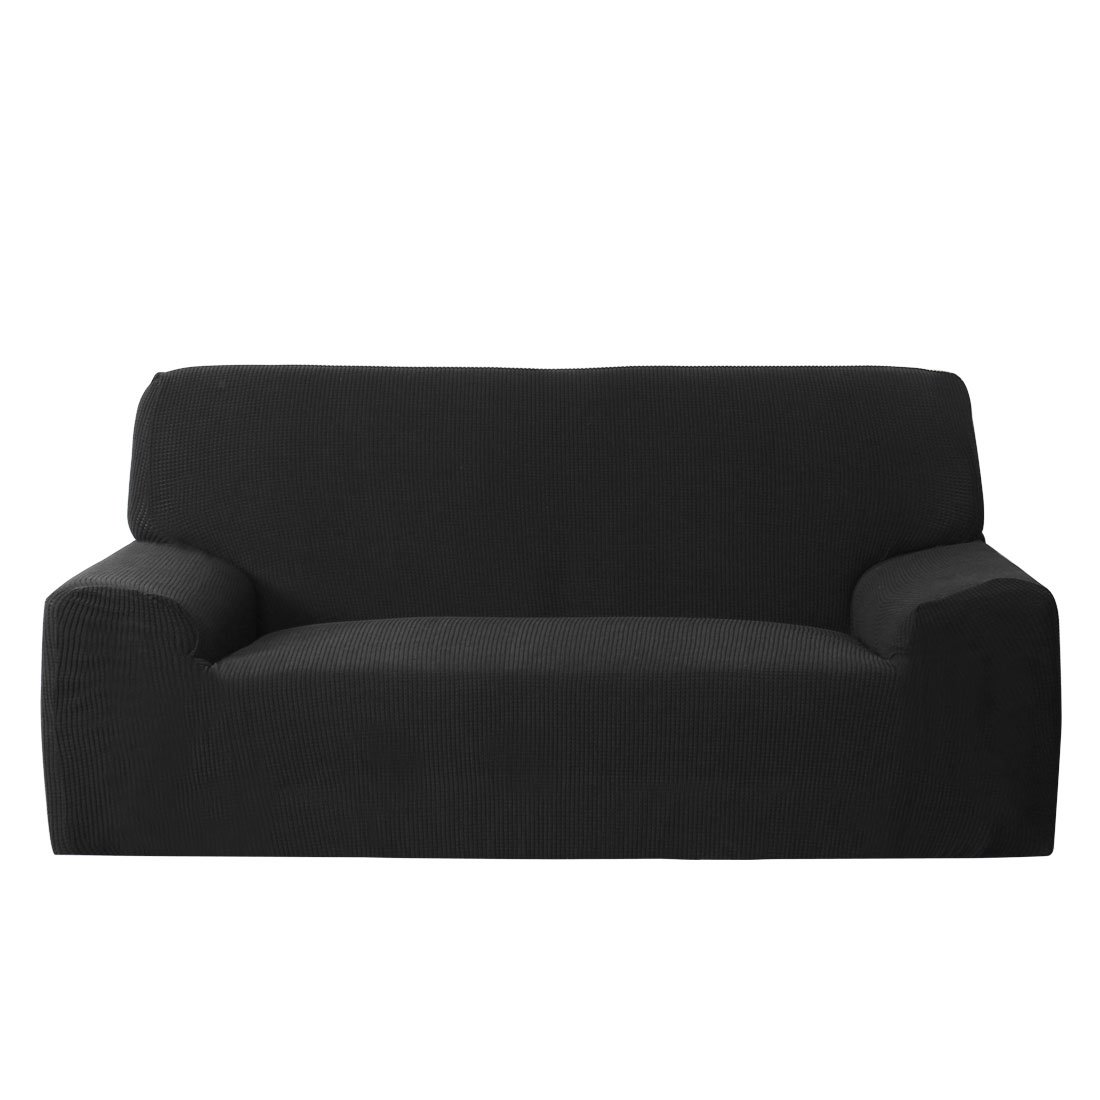 Amazon.com: uxcell Couch Slipcover for 1 2 3 Seater Sofa ...